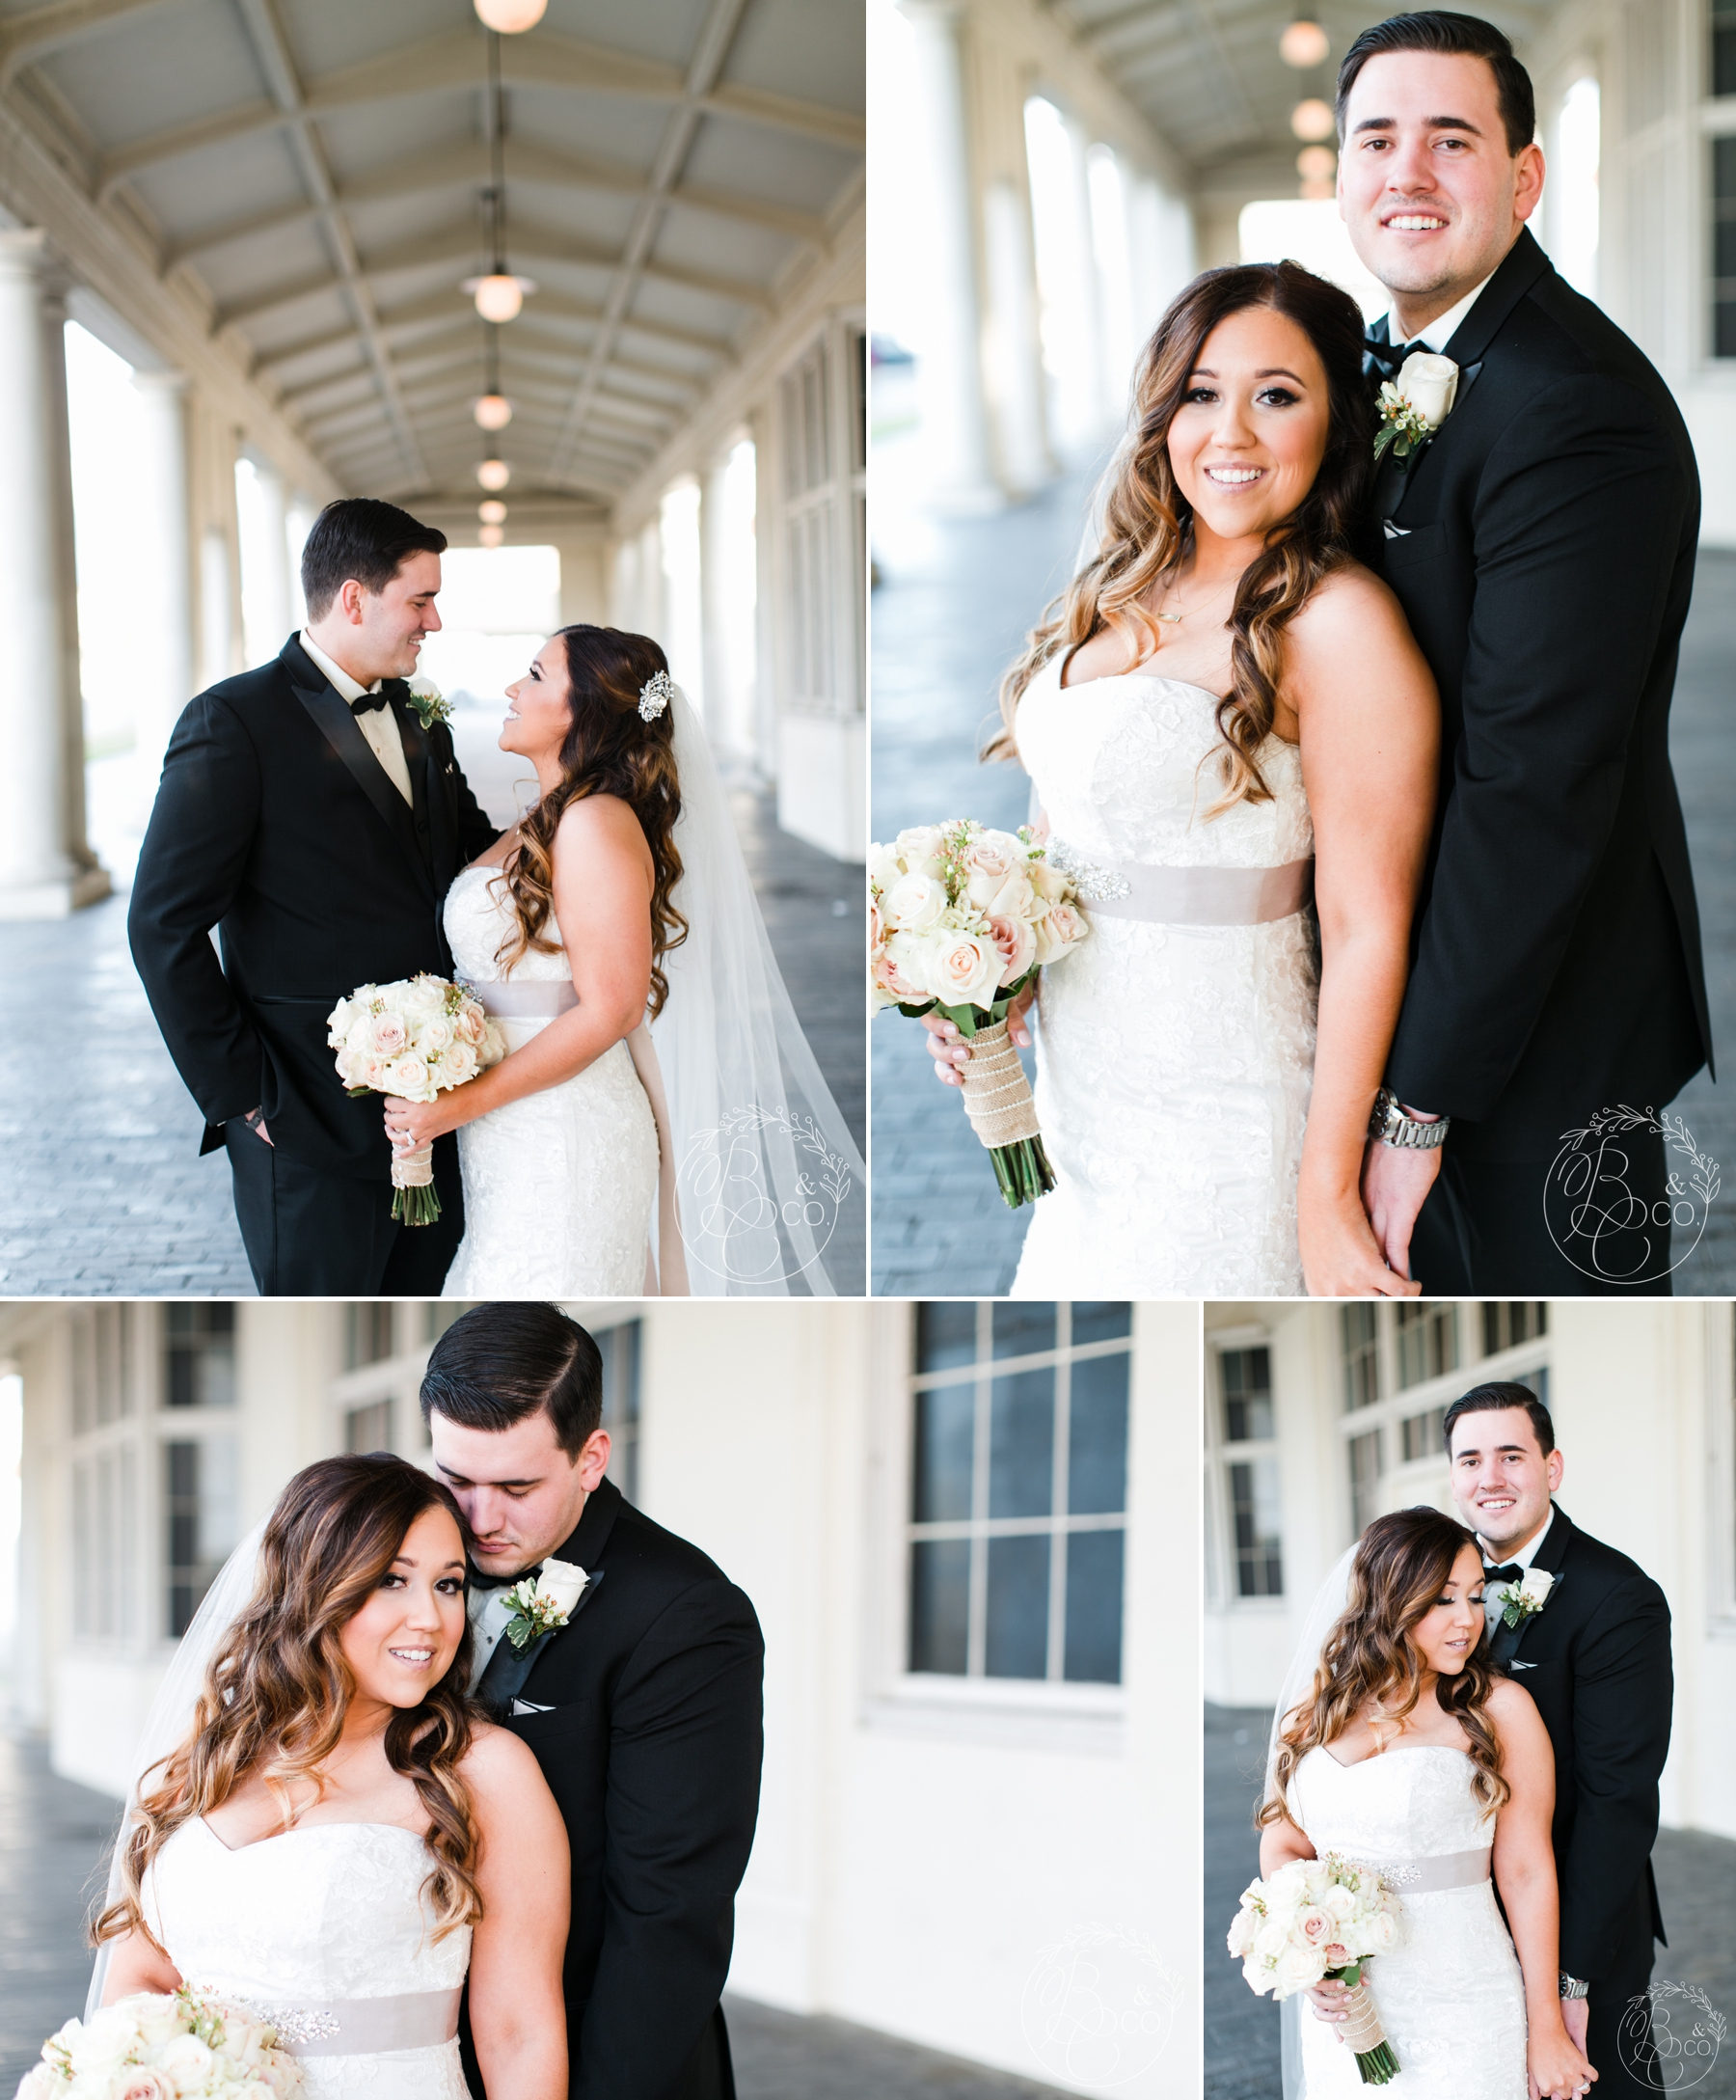 The-Mitten-Building-Wedding-Brianna-Caster-and-co-photographers-5